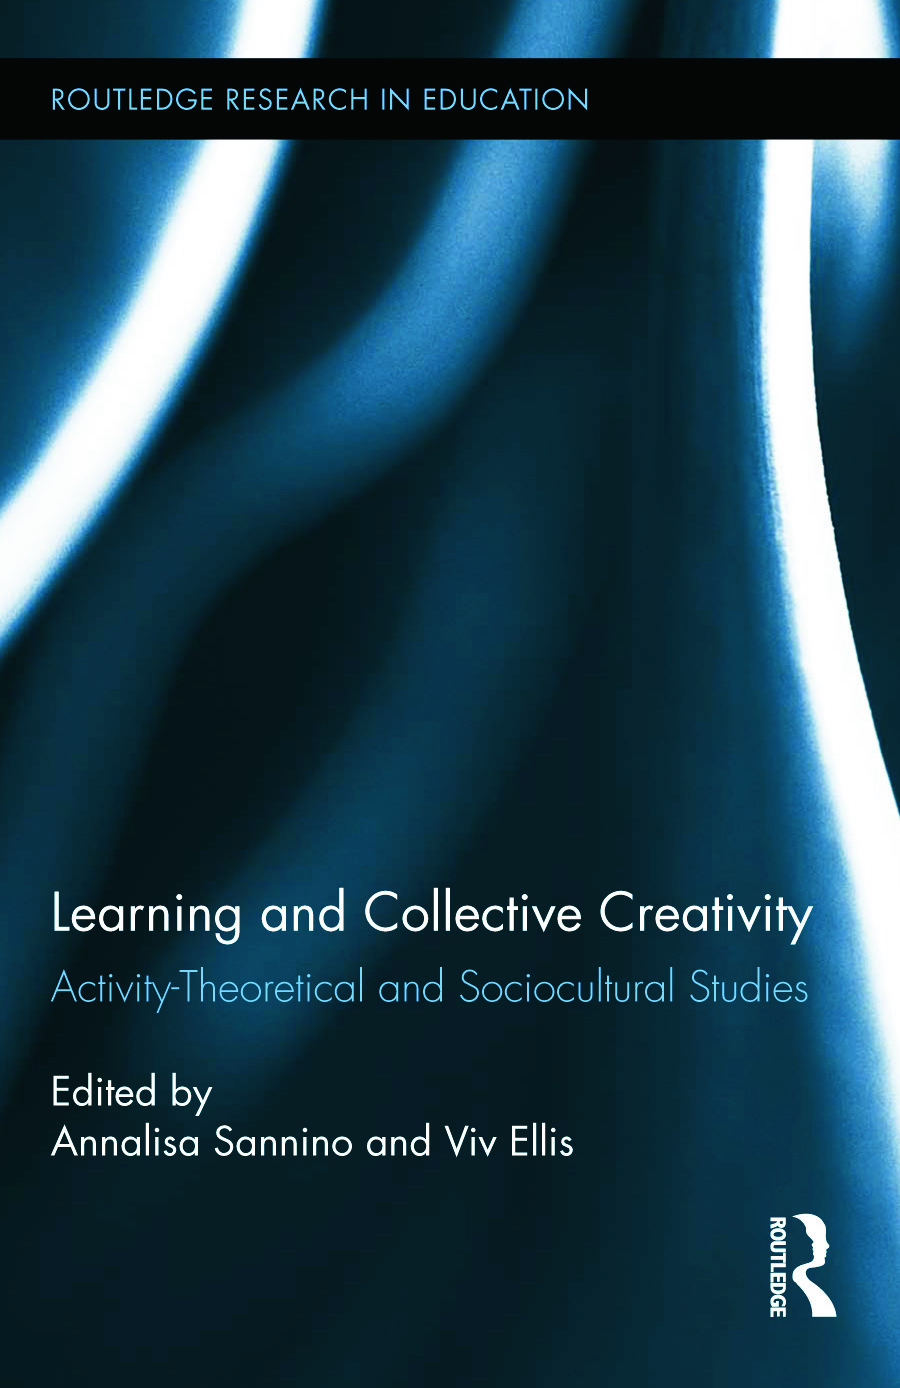 Musical Creativity and Learning across the Individual and the Collective